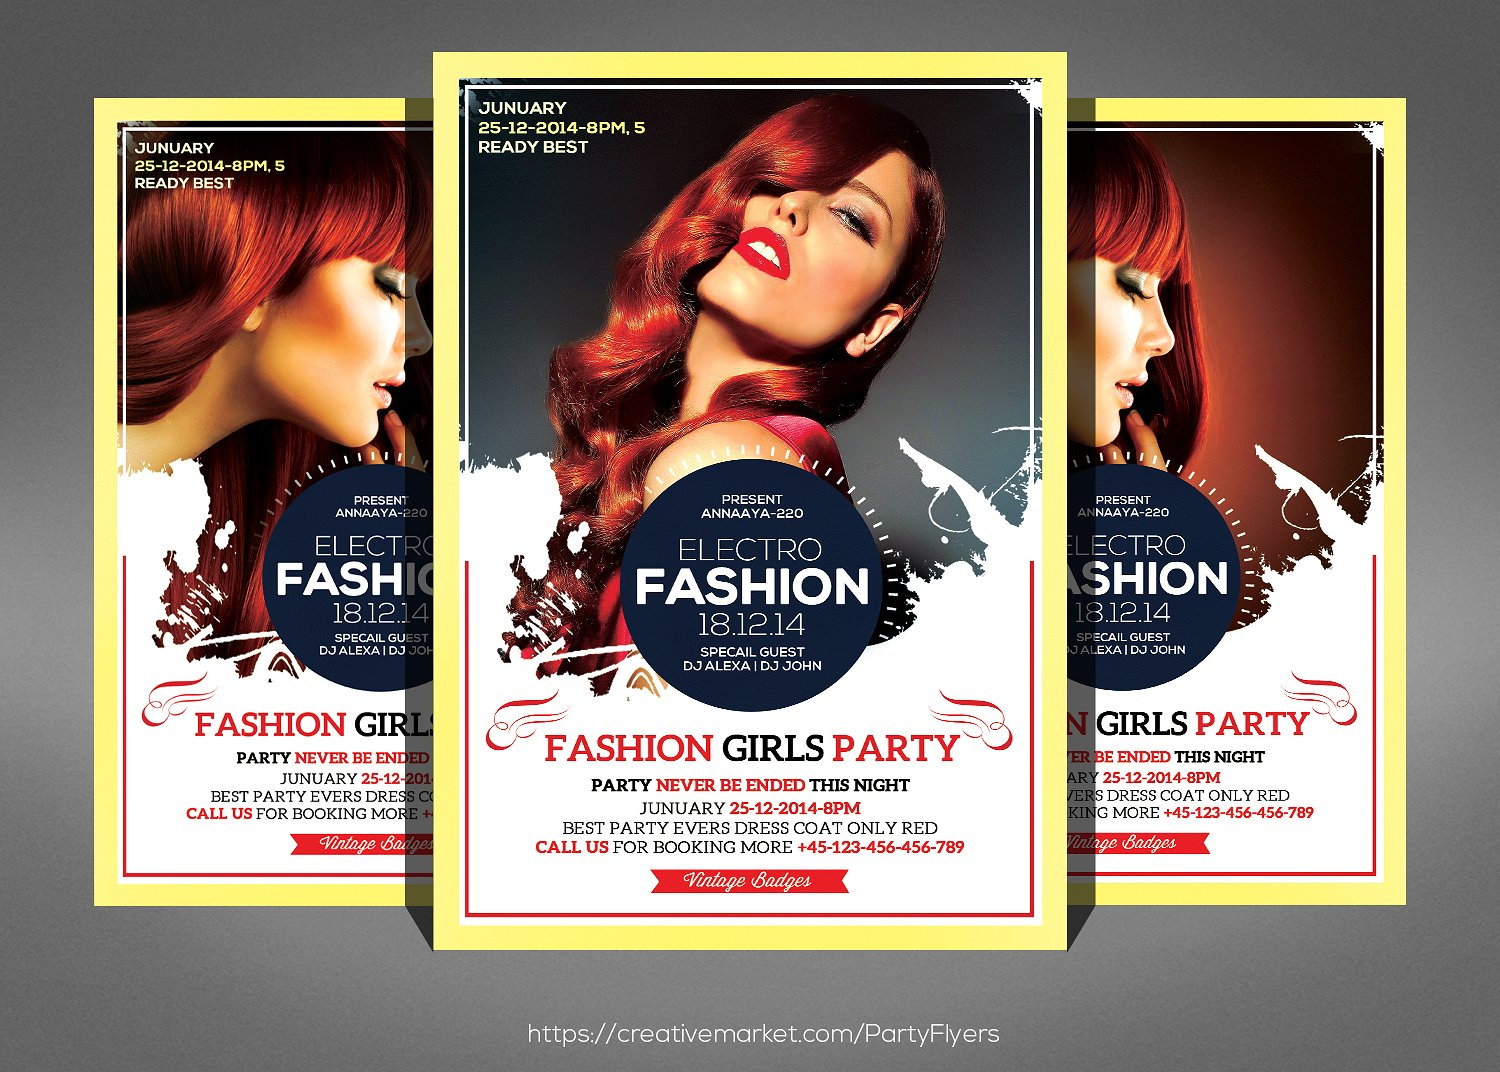 Electro & Fashion Glasses Flyer Double Sided